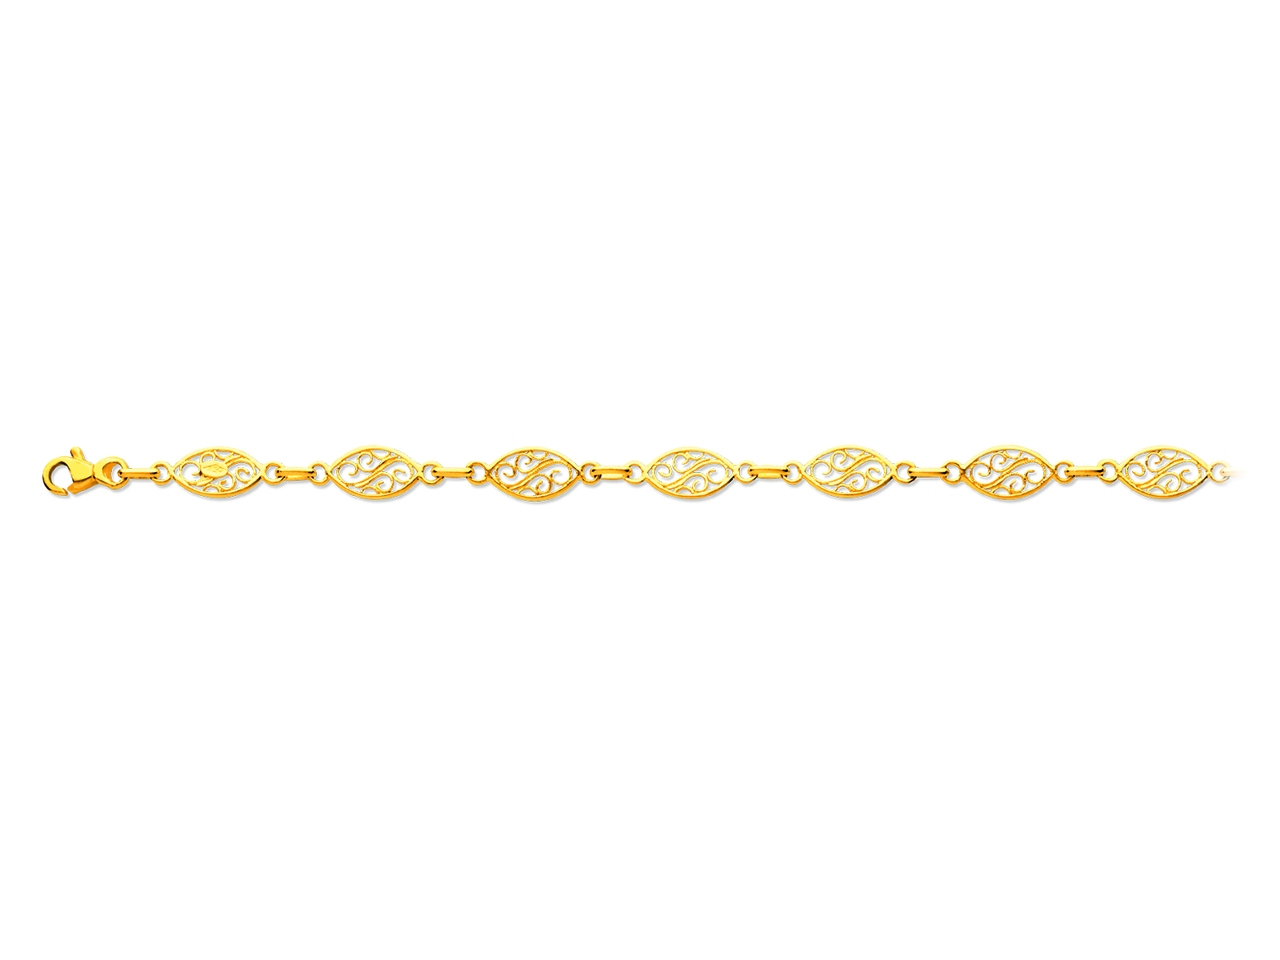 Bracelet maille filigrane, Or jaune 18k, 6,8 mm, 19 cm